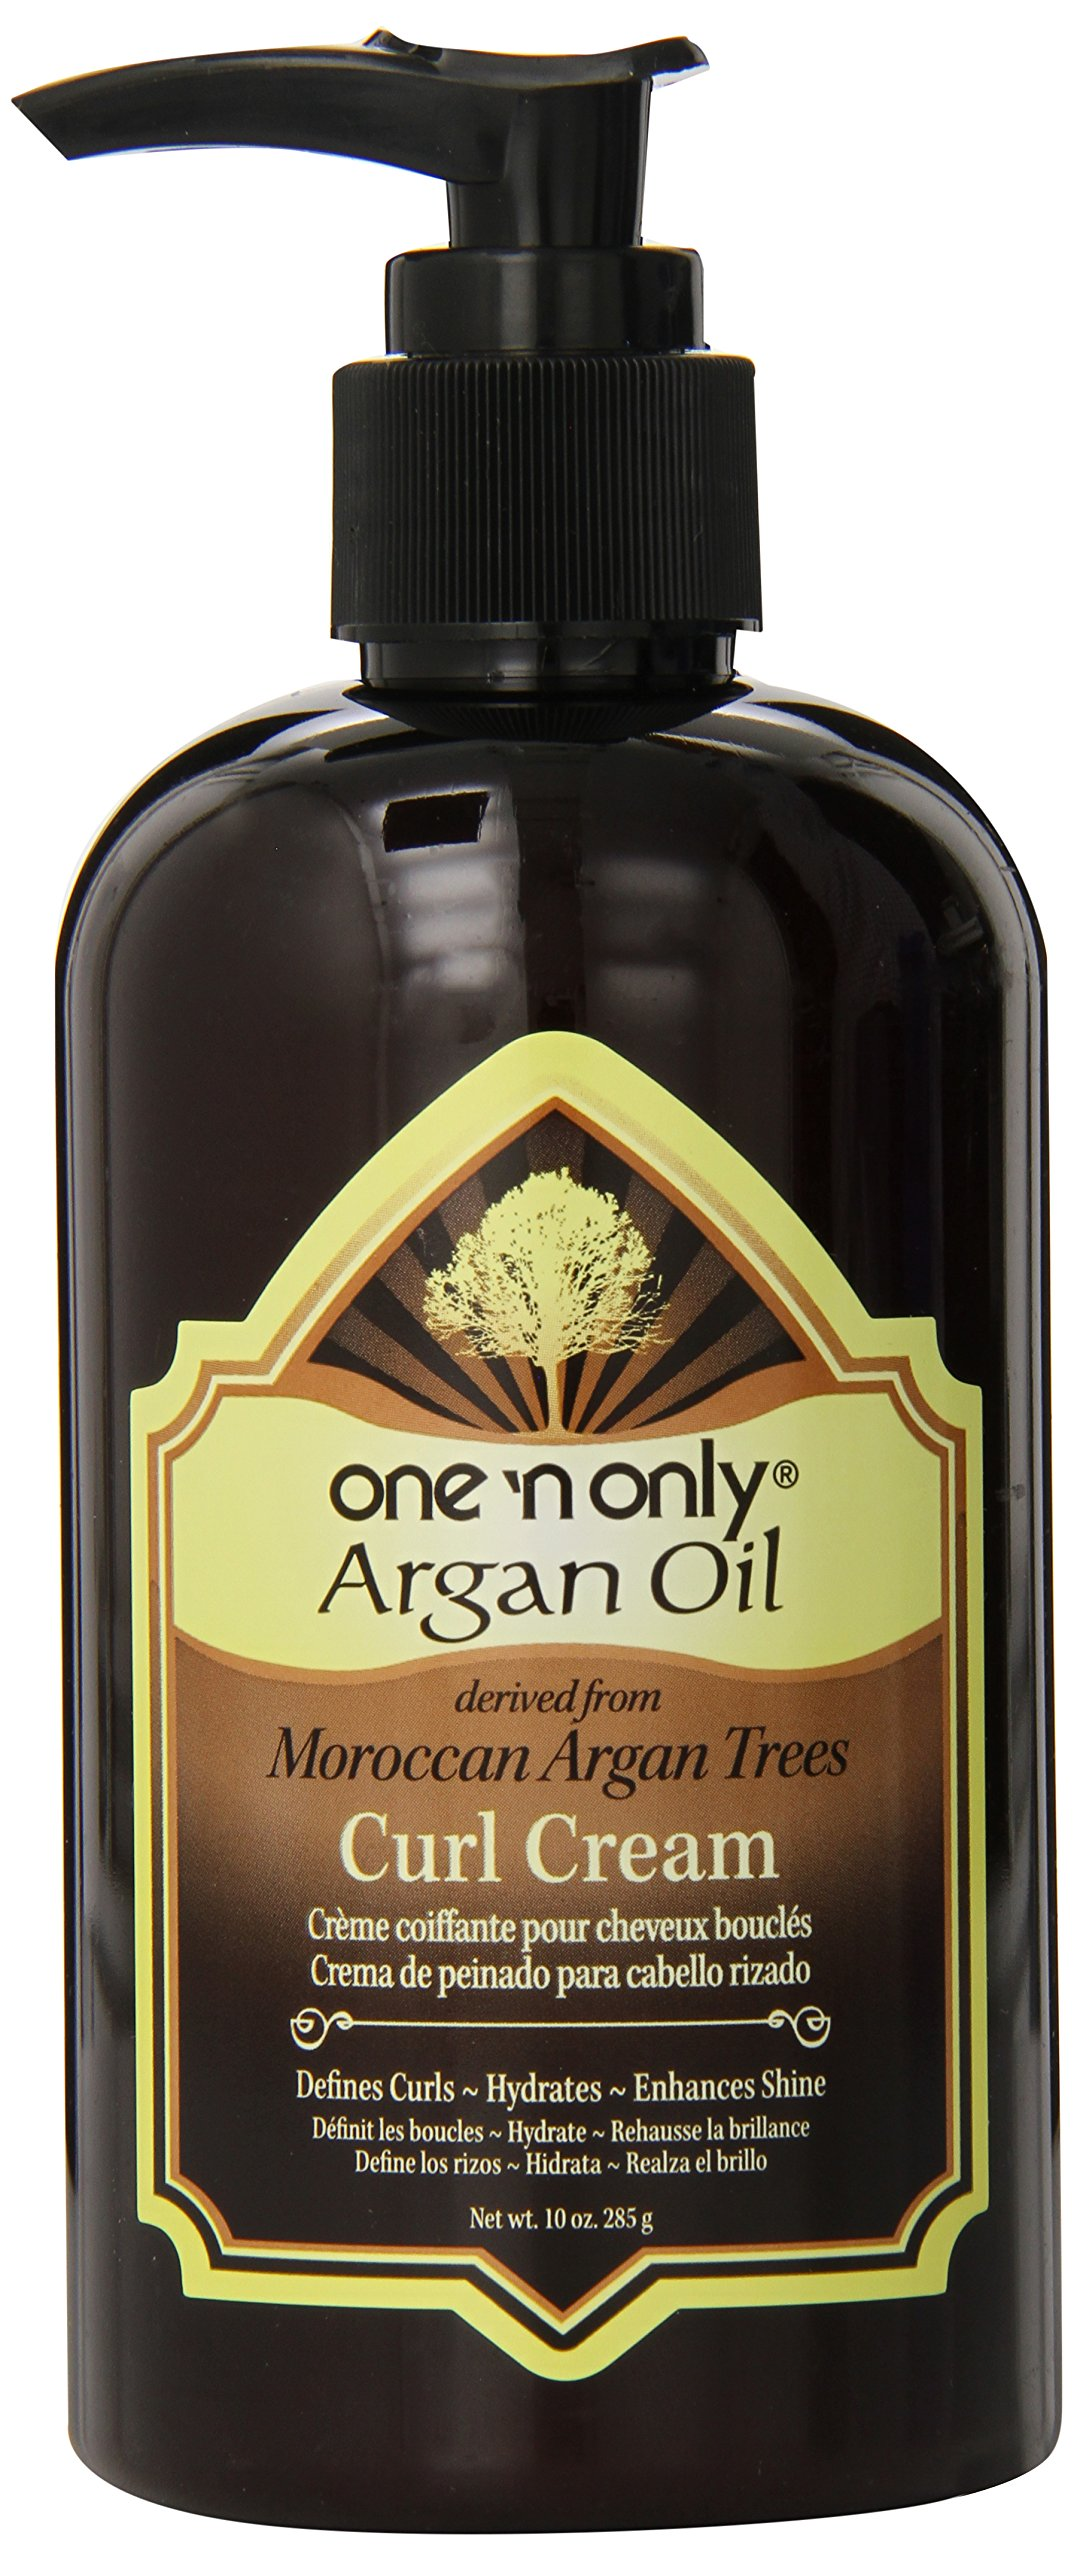 one 'n only Argan Oil Curl Cream Derived from Moroccan Argan Tress, 10 Ounce